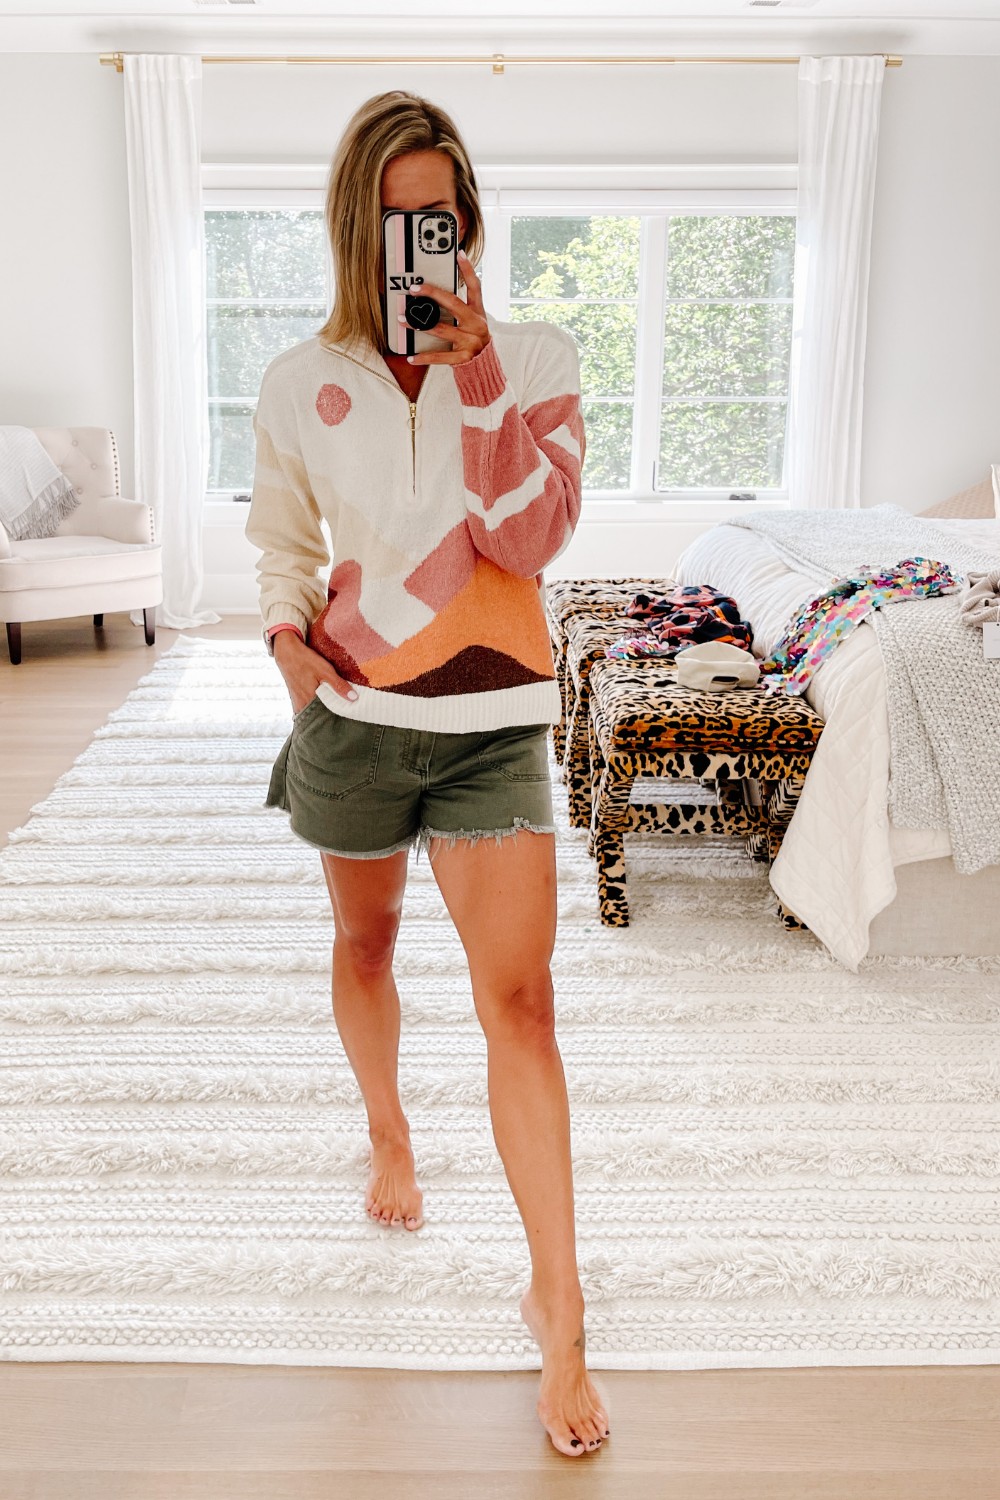 August #ootd round up: lightweight sweater and shorts